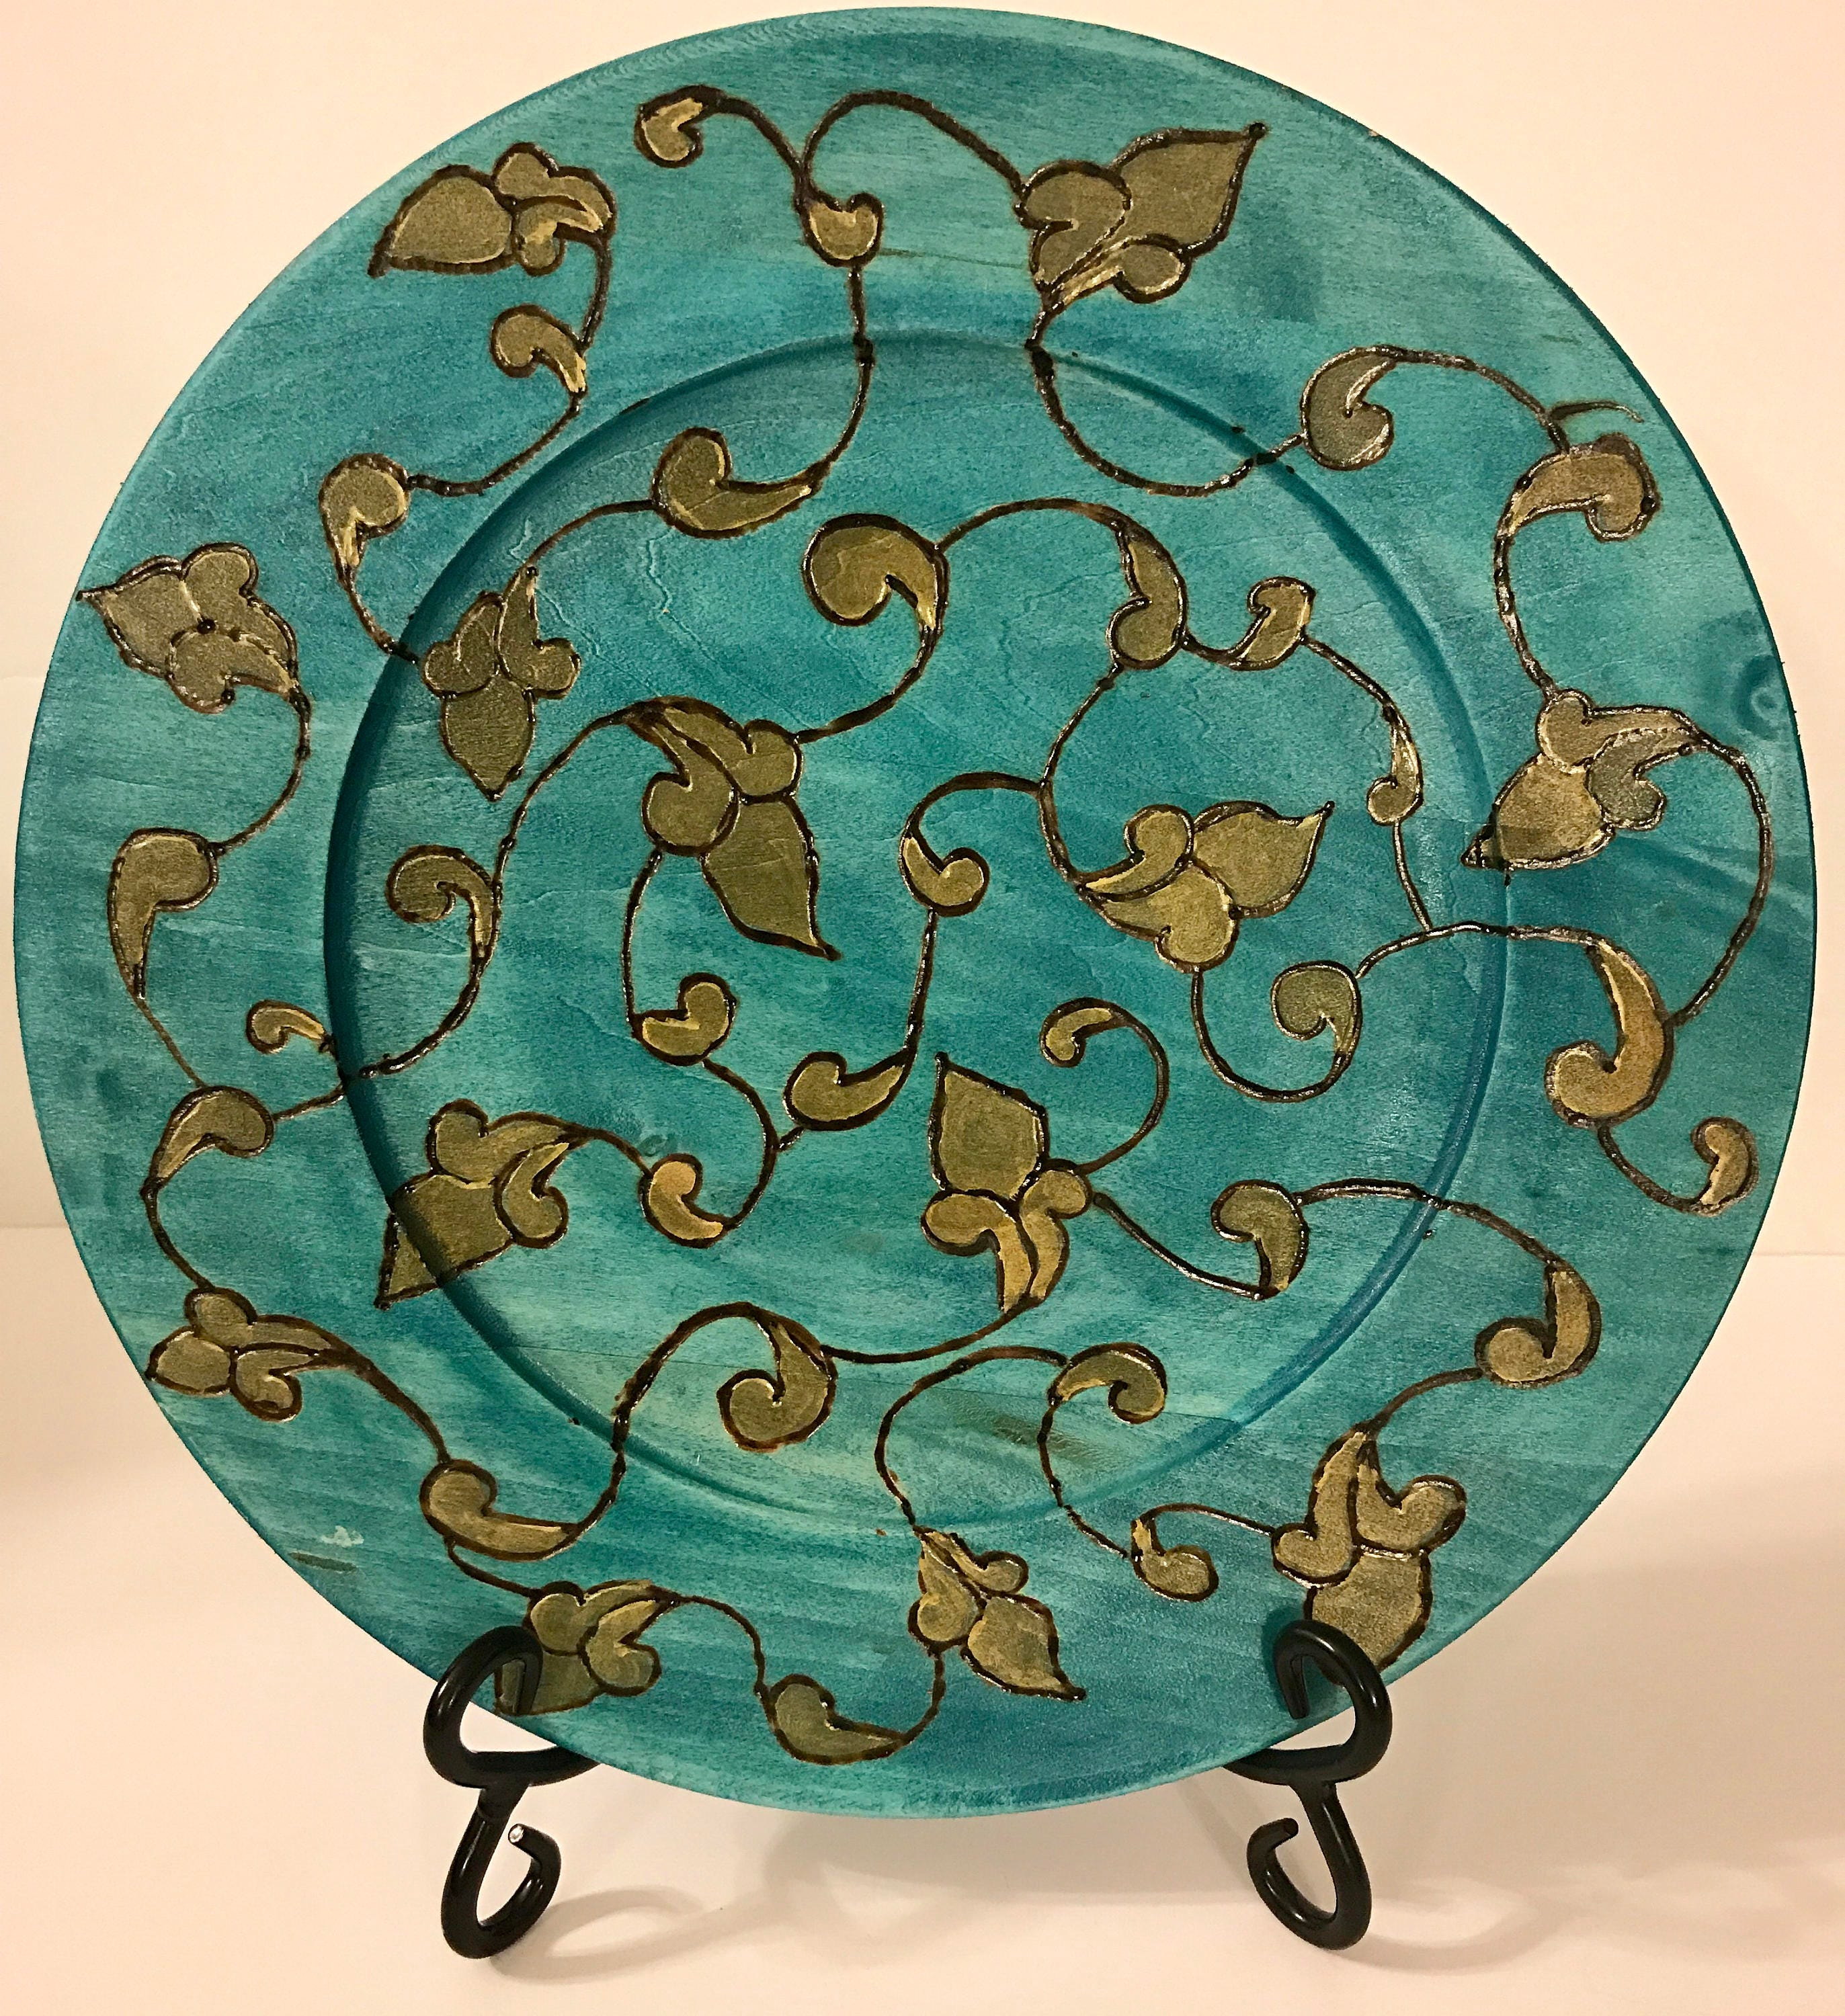 A Mid Summer Nights Dream Collection Wooden Home Decor Plate by The  Arabesque. Woodburned Vine and Scroll Design In Turquoise and Gold